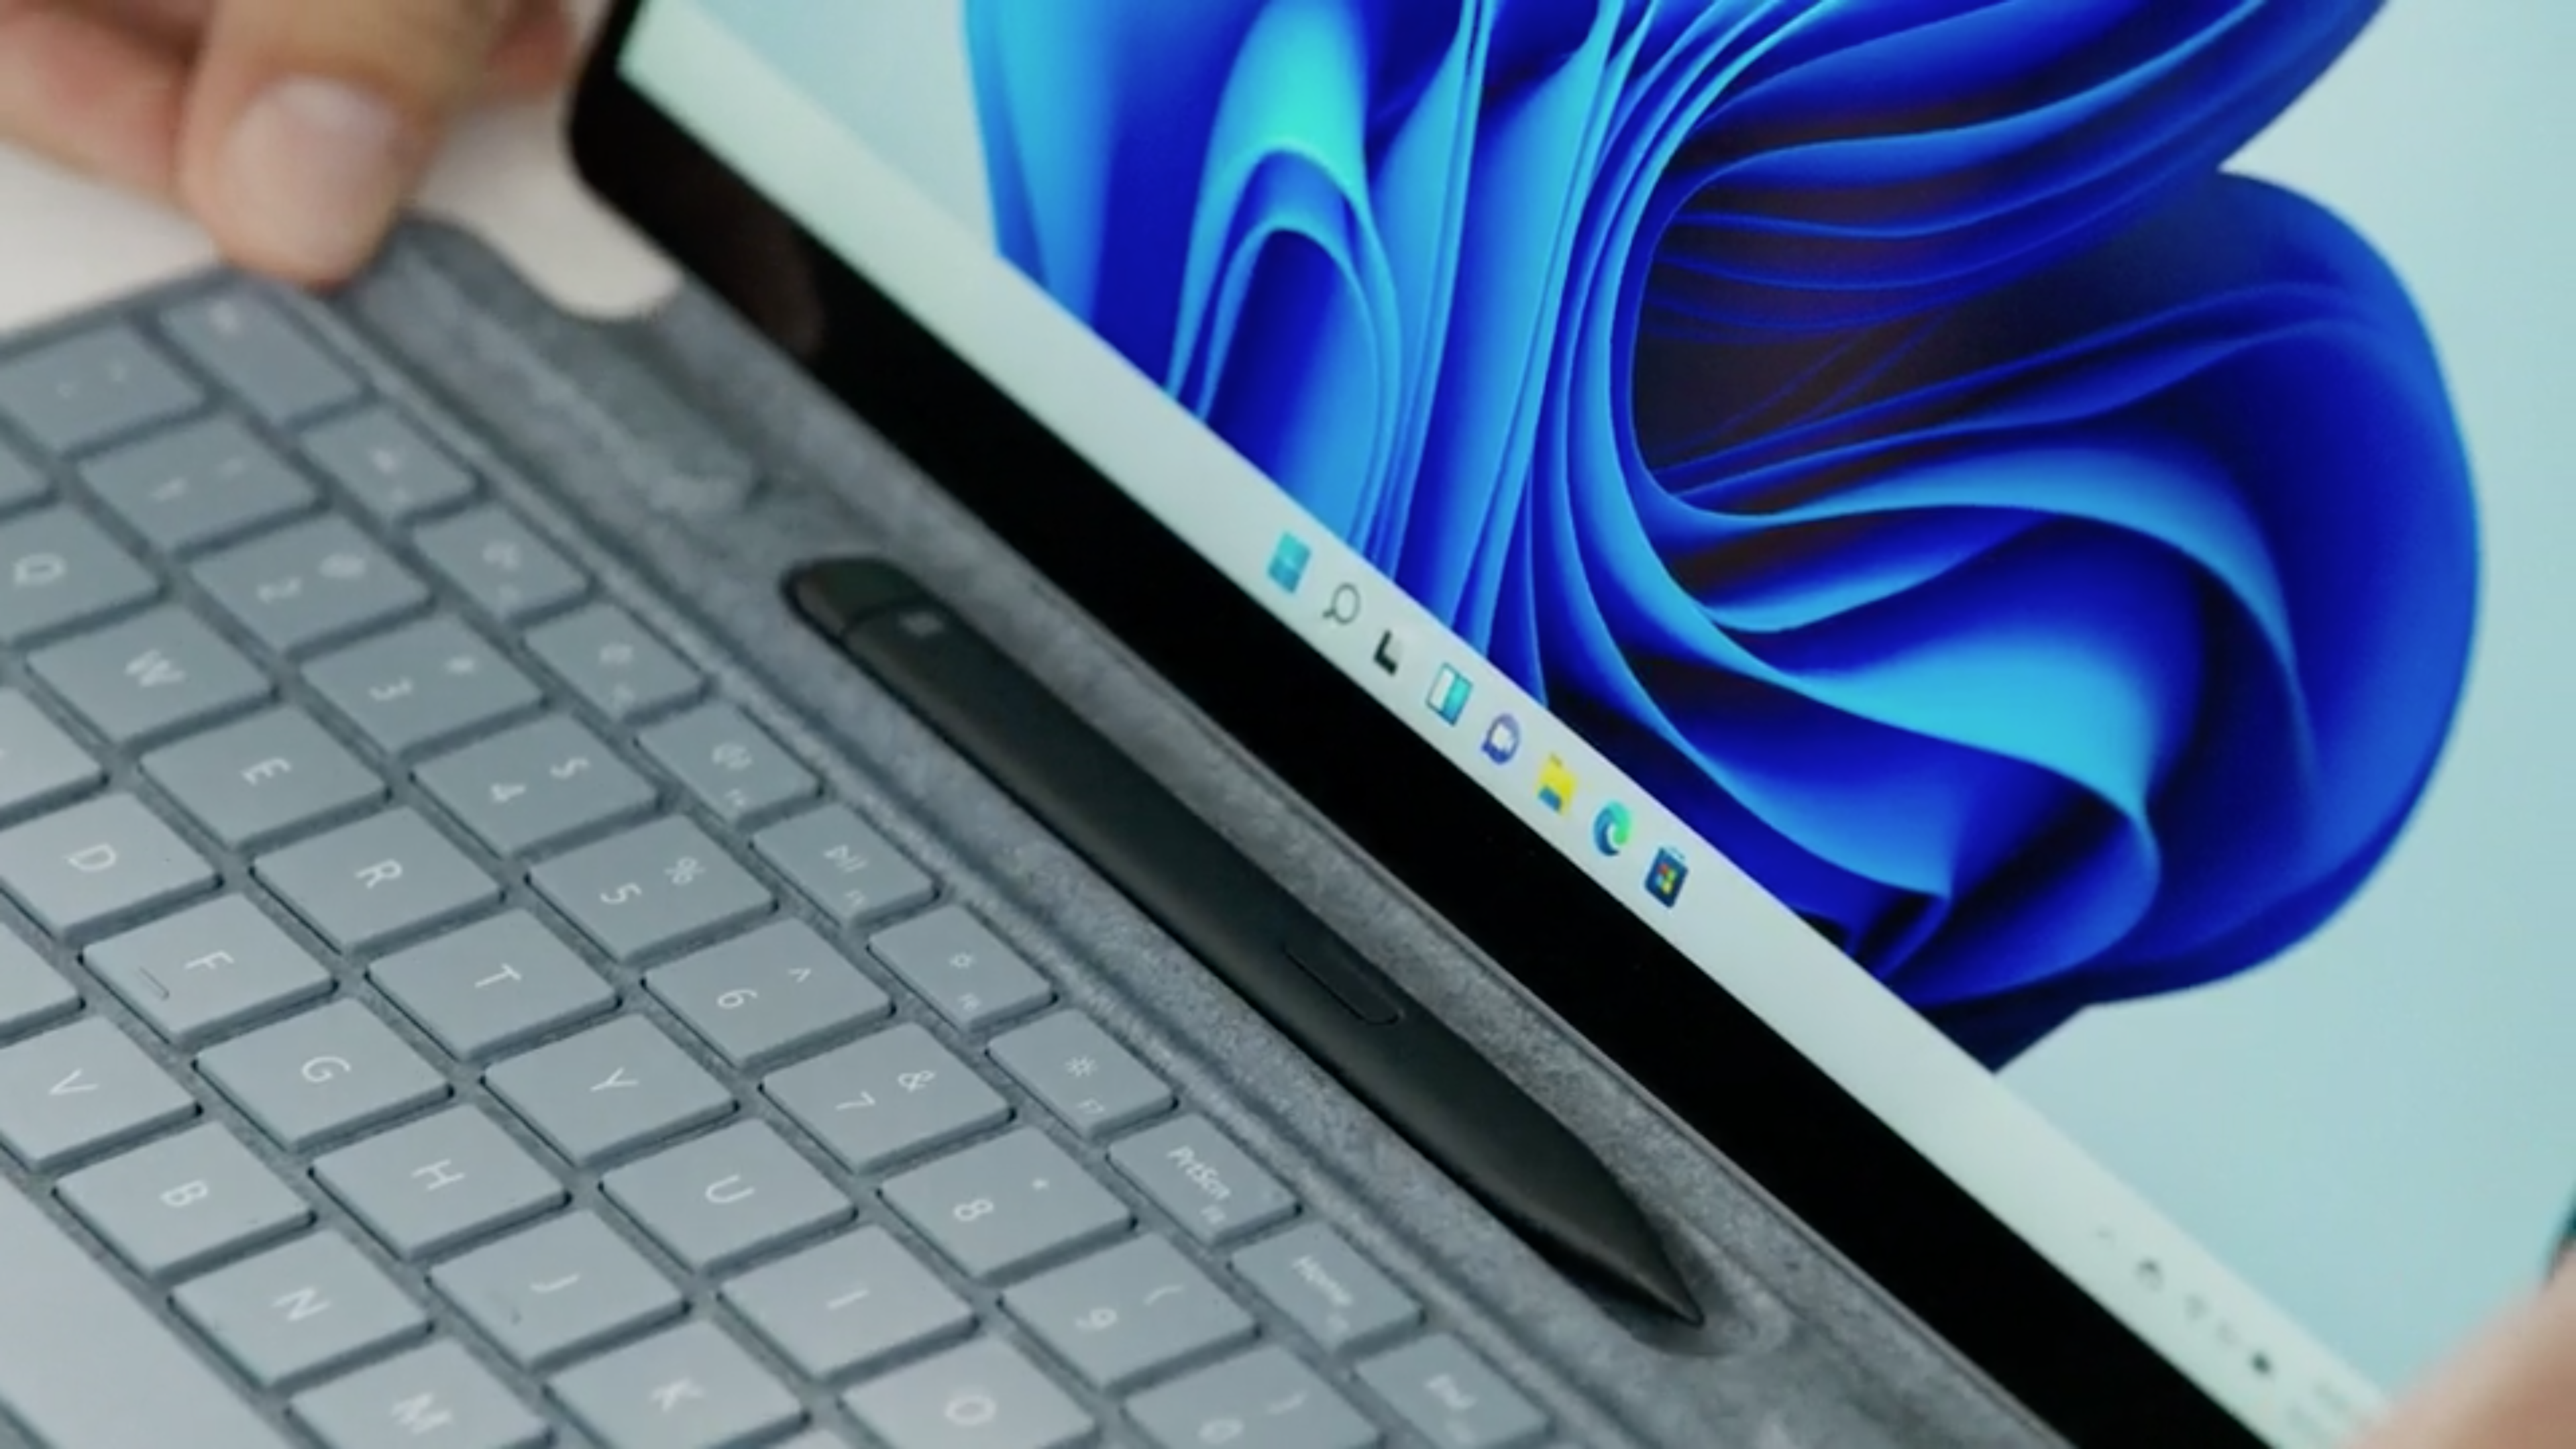 Microsoft Surface event: Surface Pro 8, Laptop Studio, Duo 2 and more